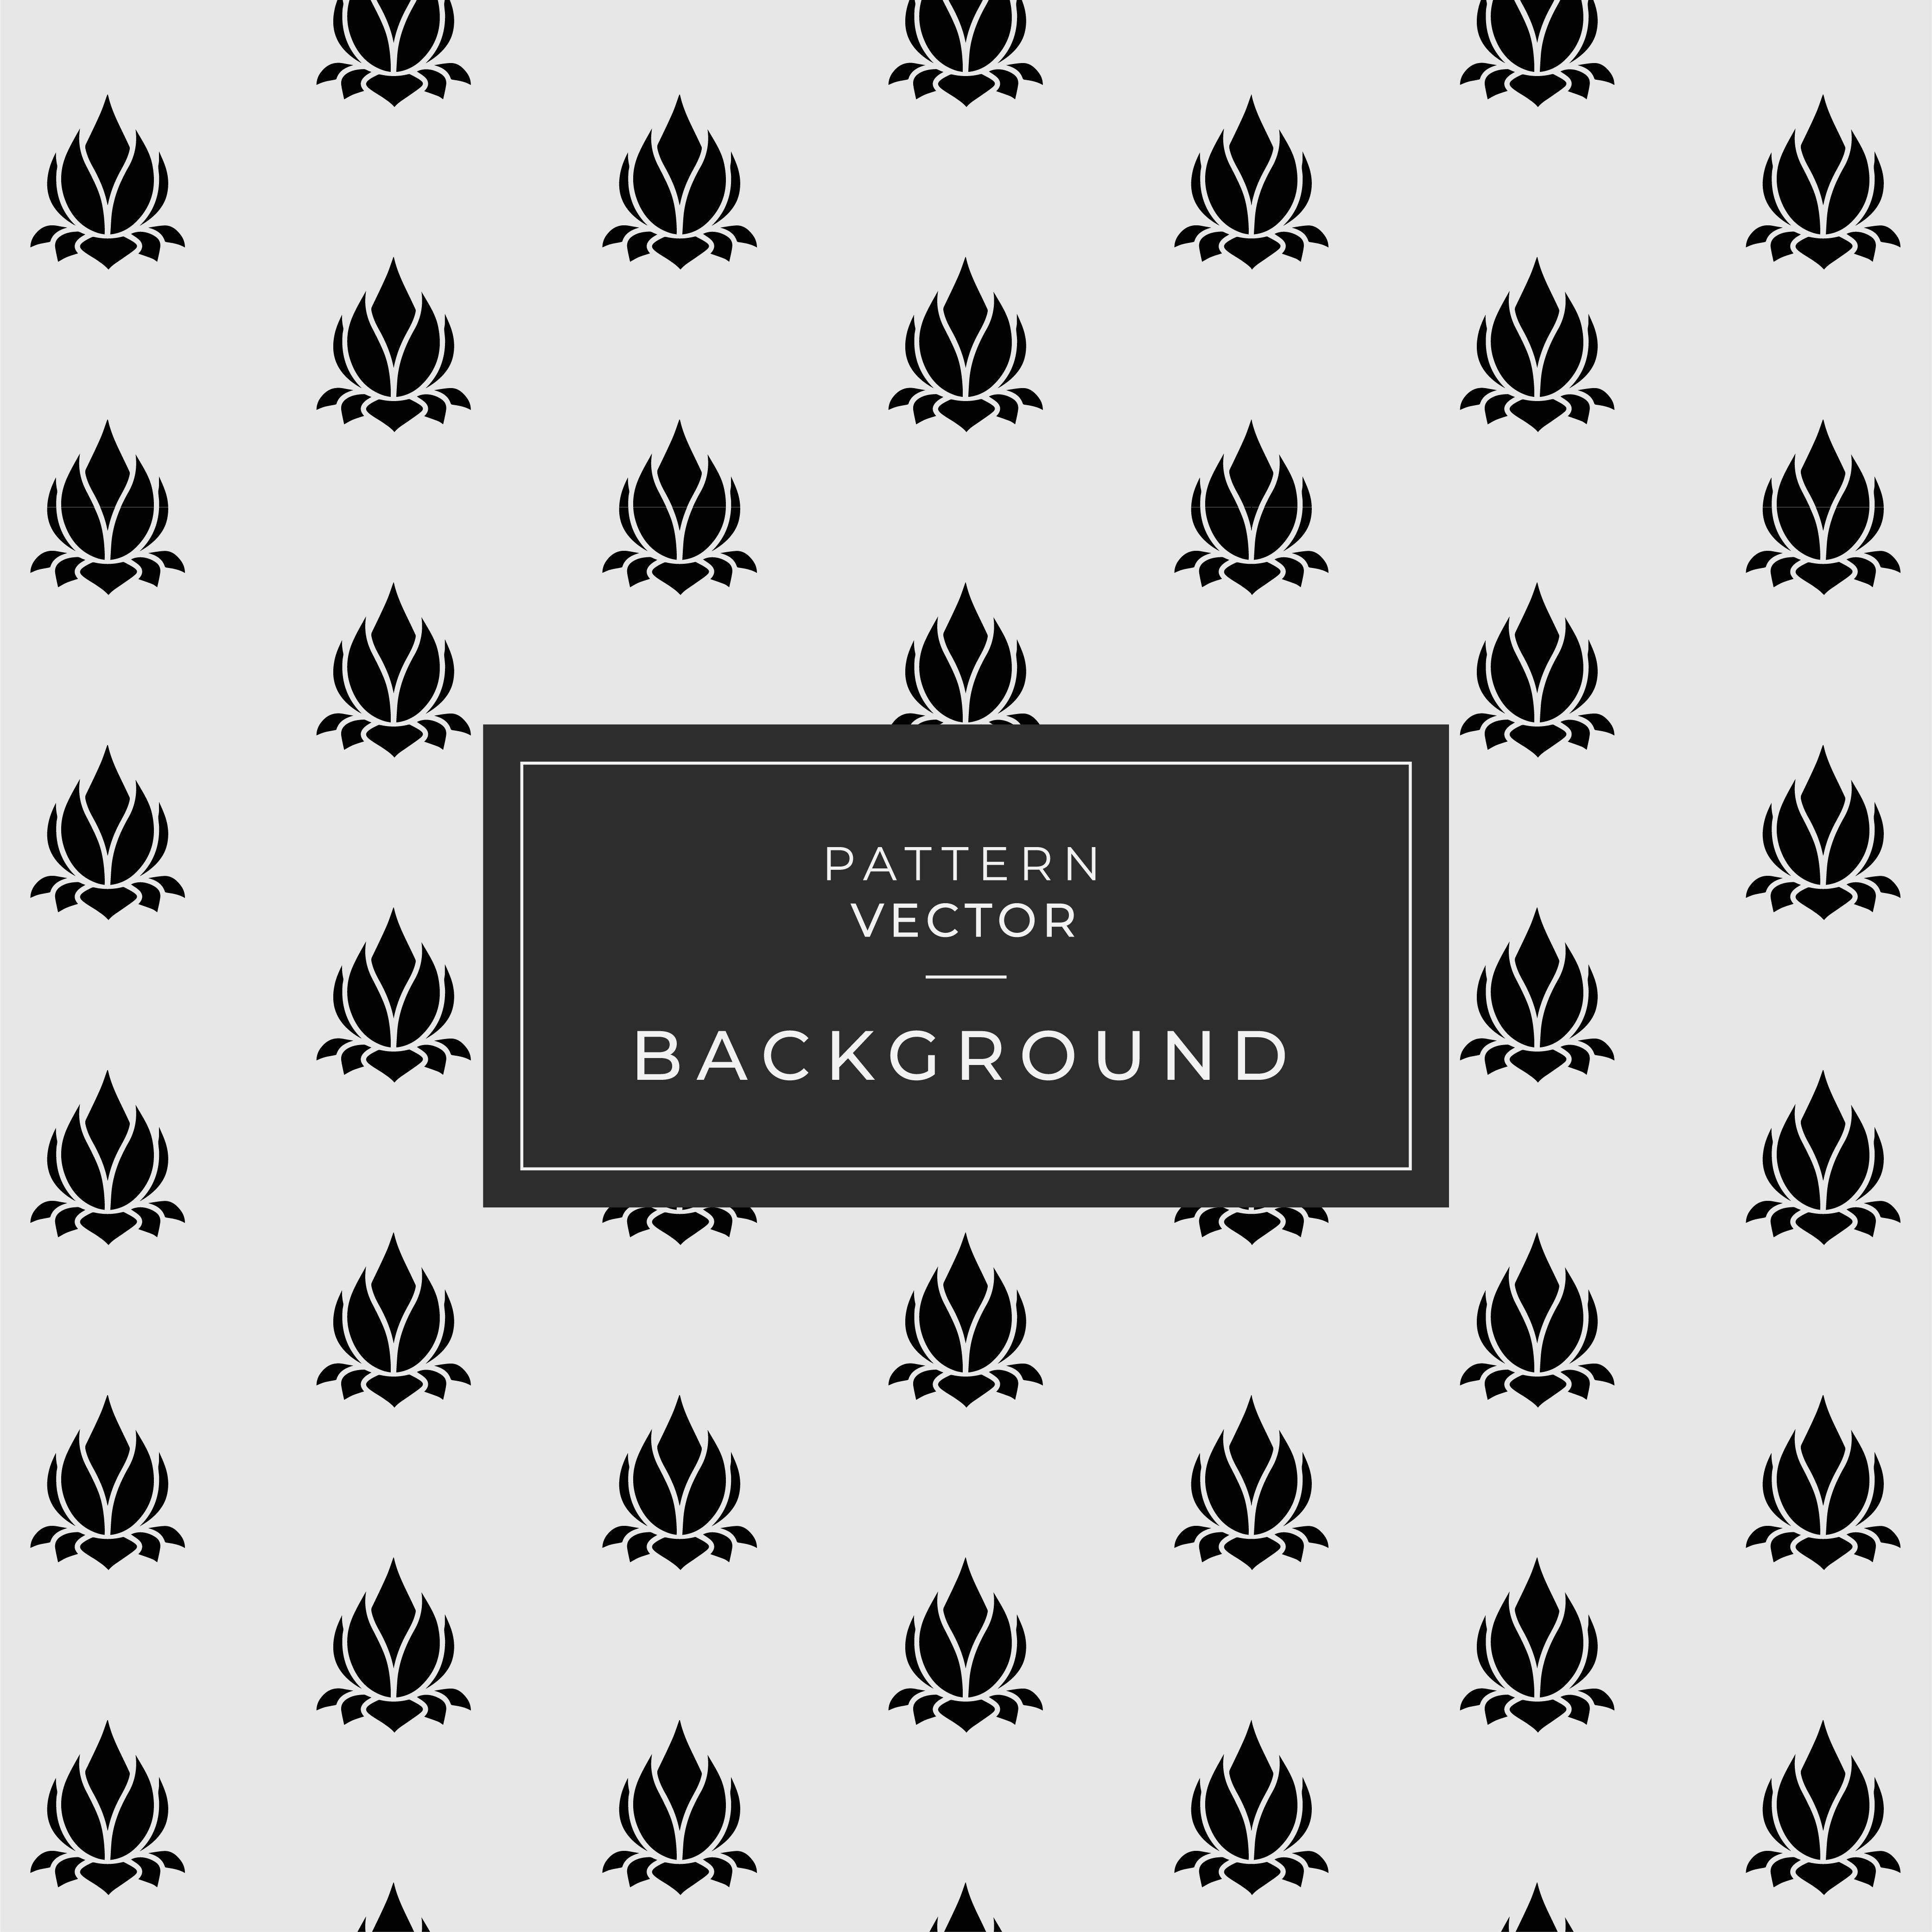 Black Marble Design with Lotus Floral Pattern - Download Free